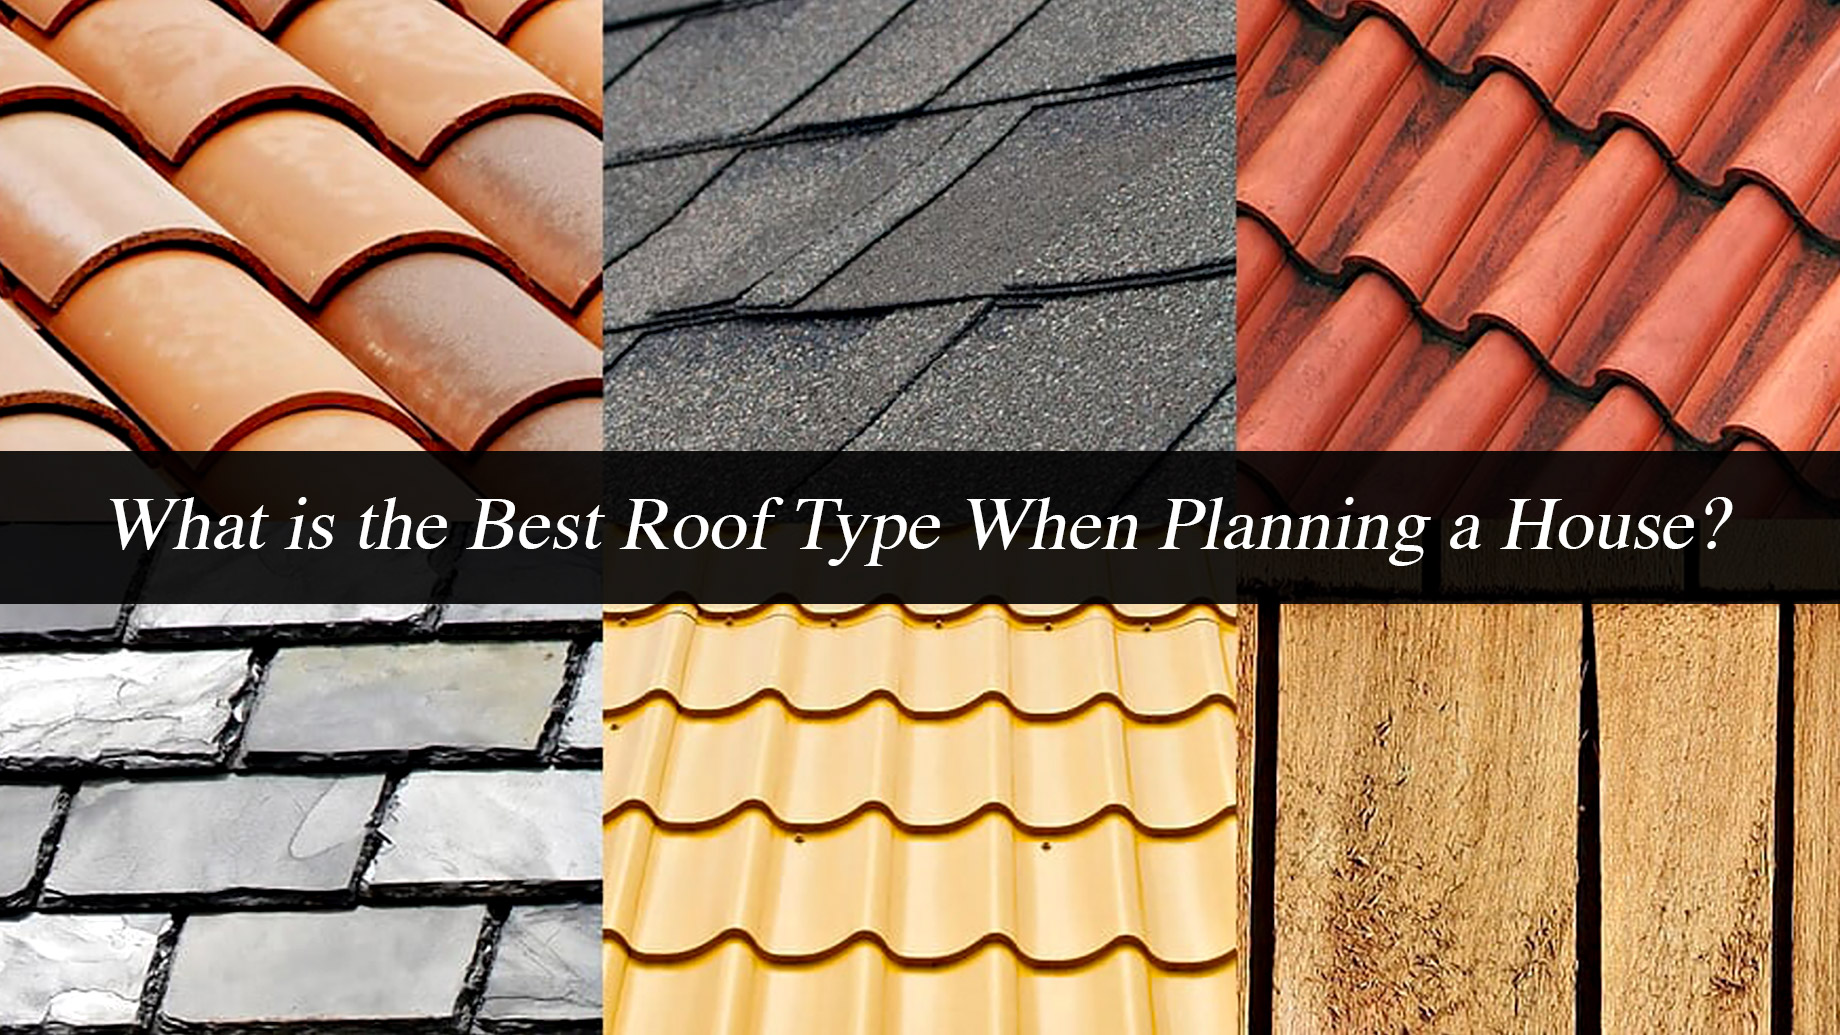 What is the Best Roof Type When Planning a House?